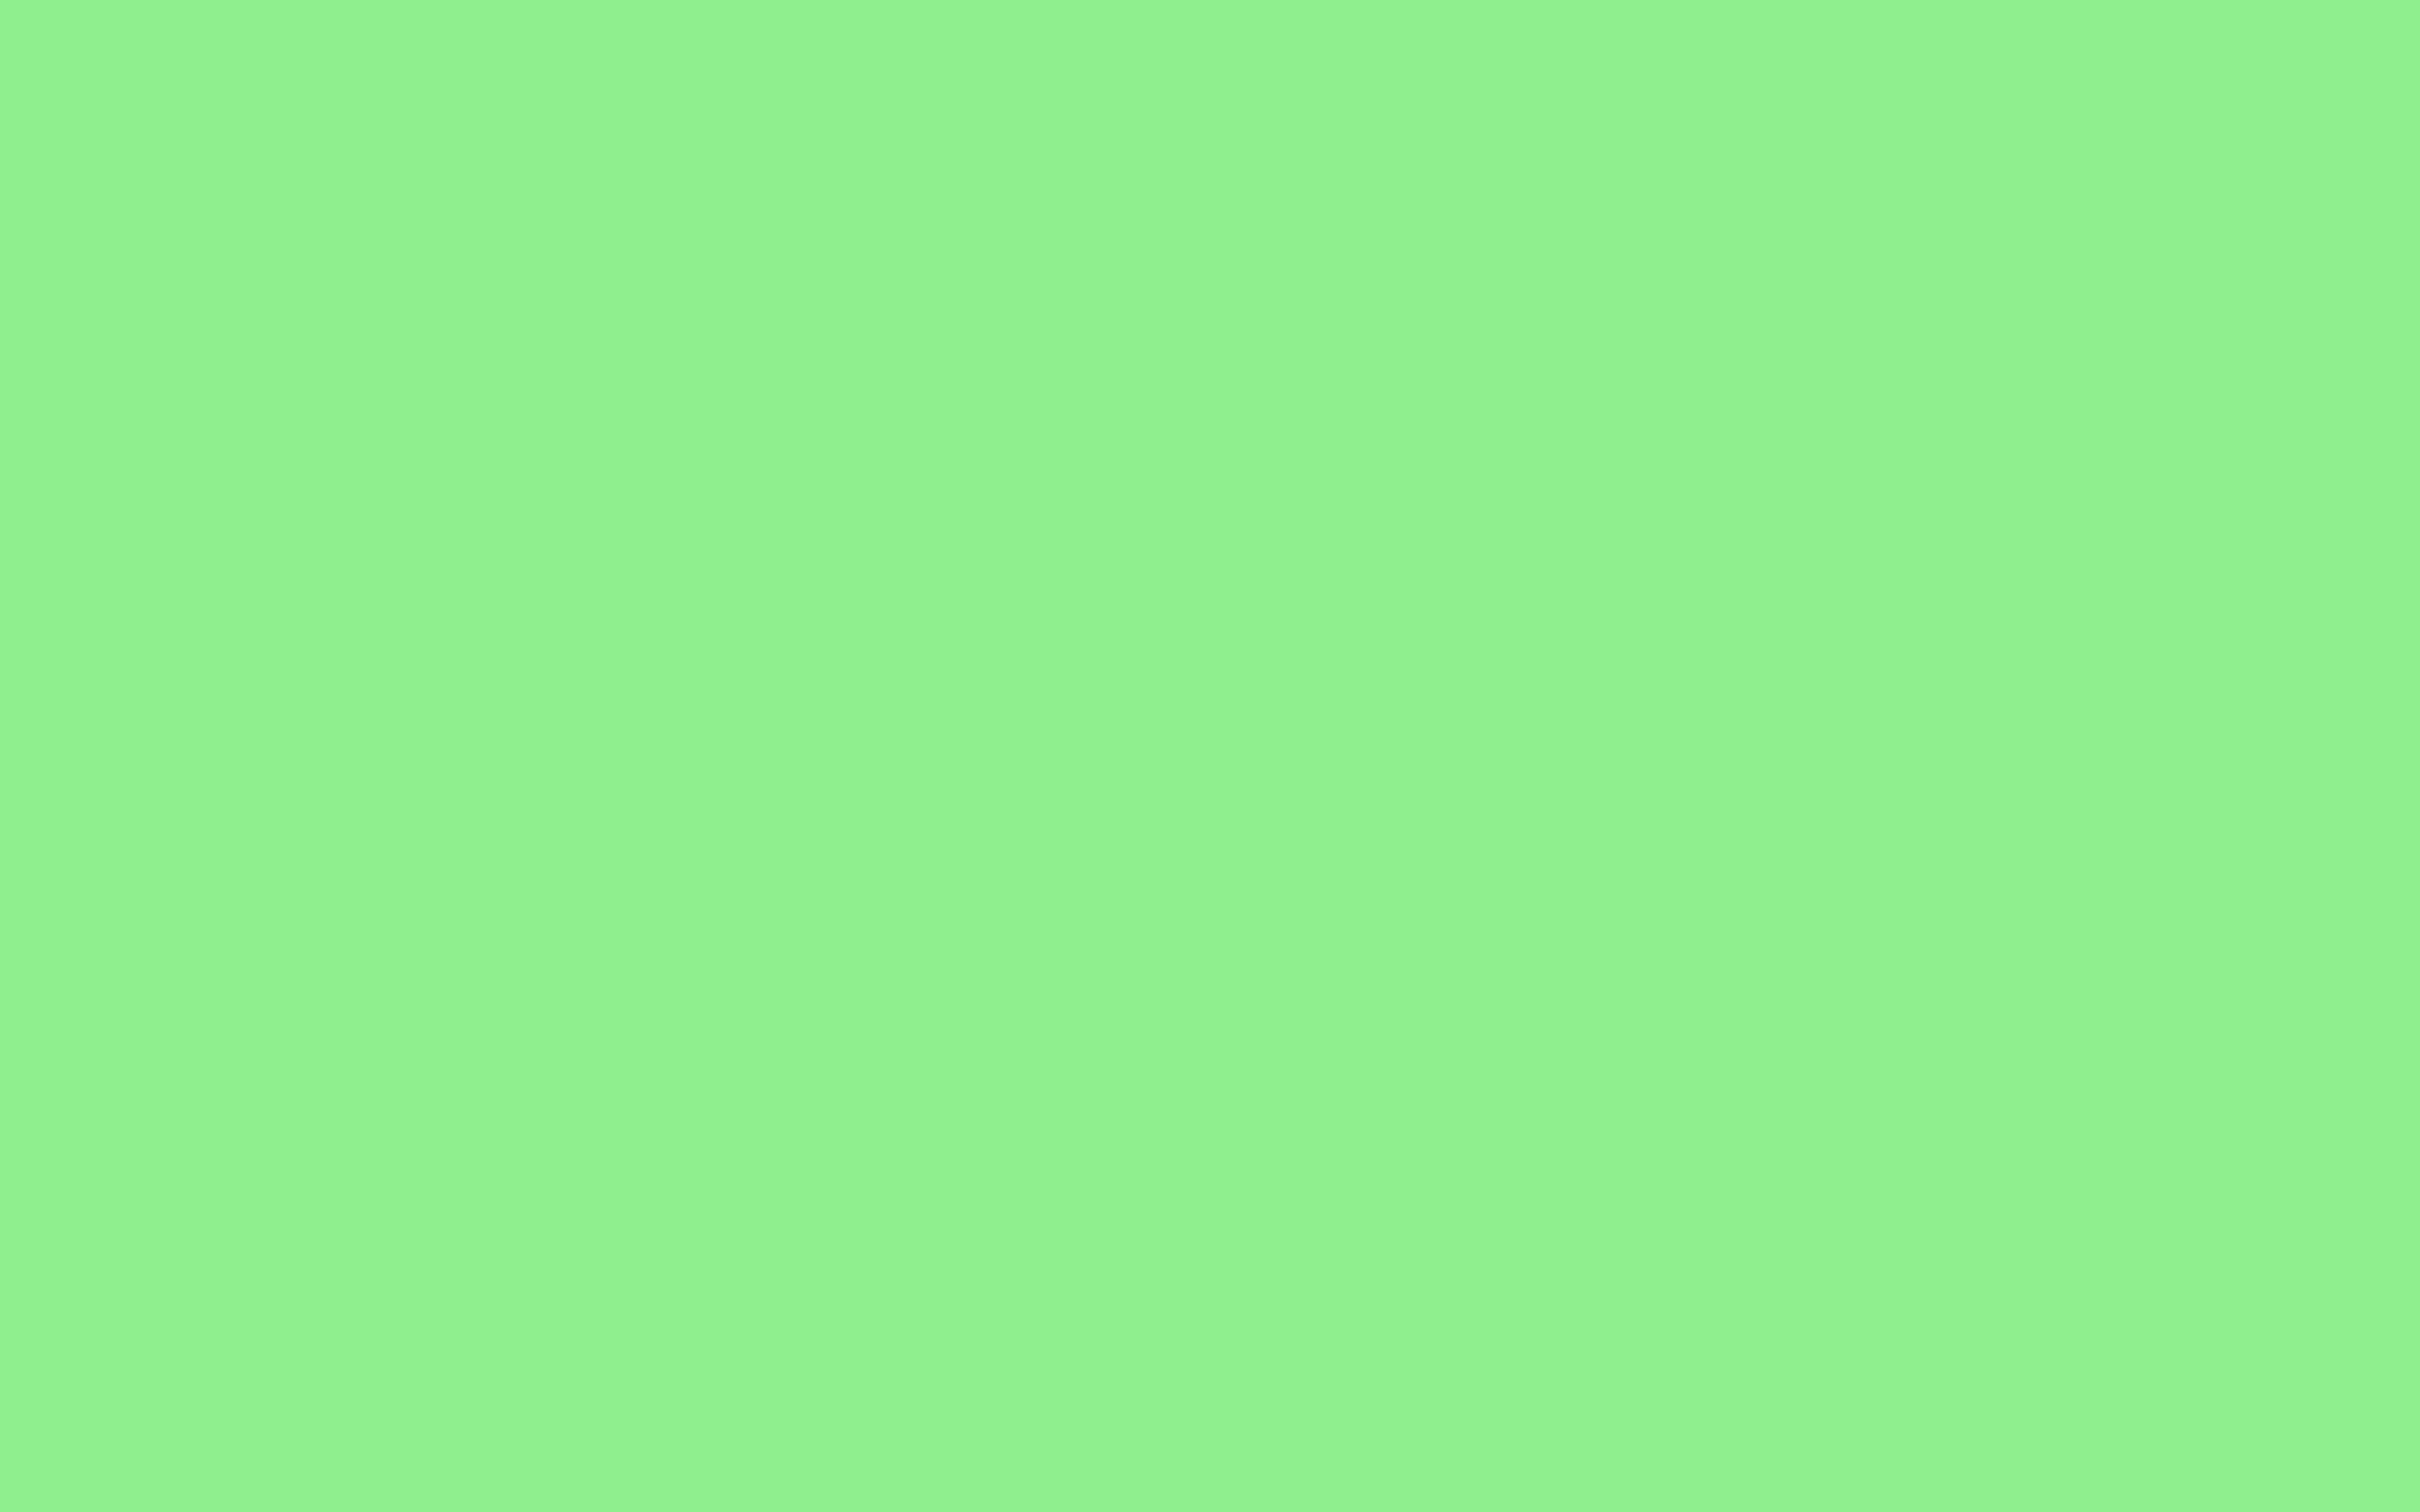 Plain White Wallpaper Iphone X Solid Green Background 183 ① Download Free Awesome Hd